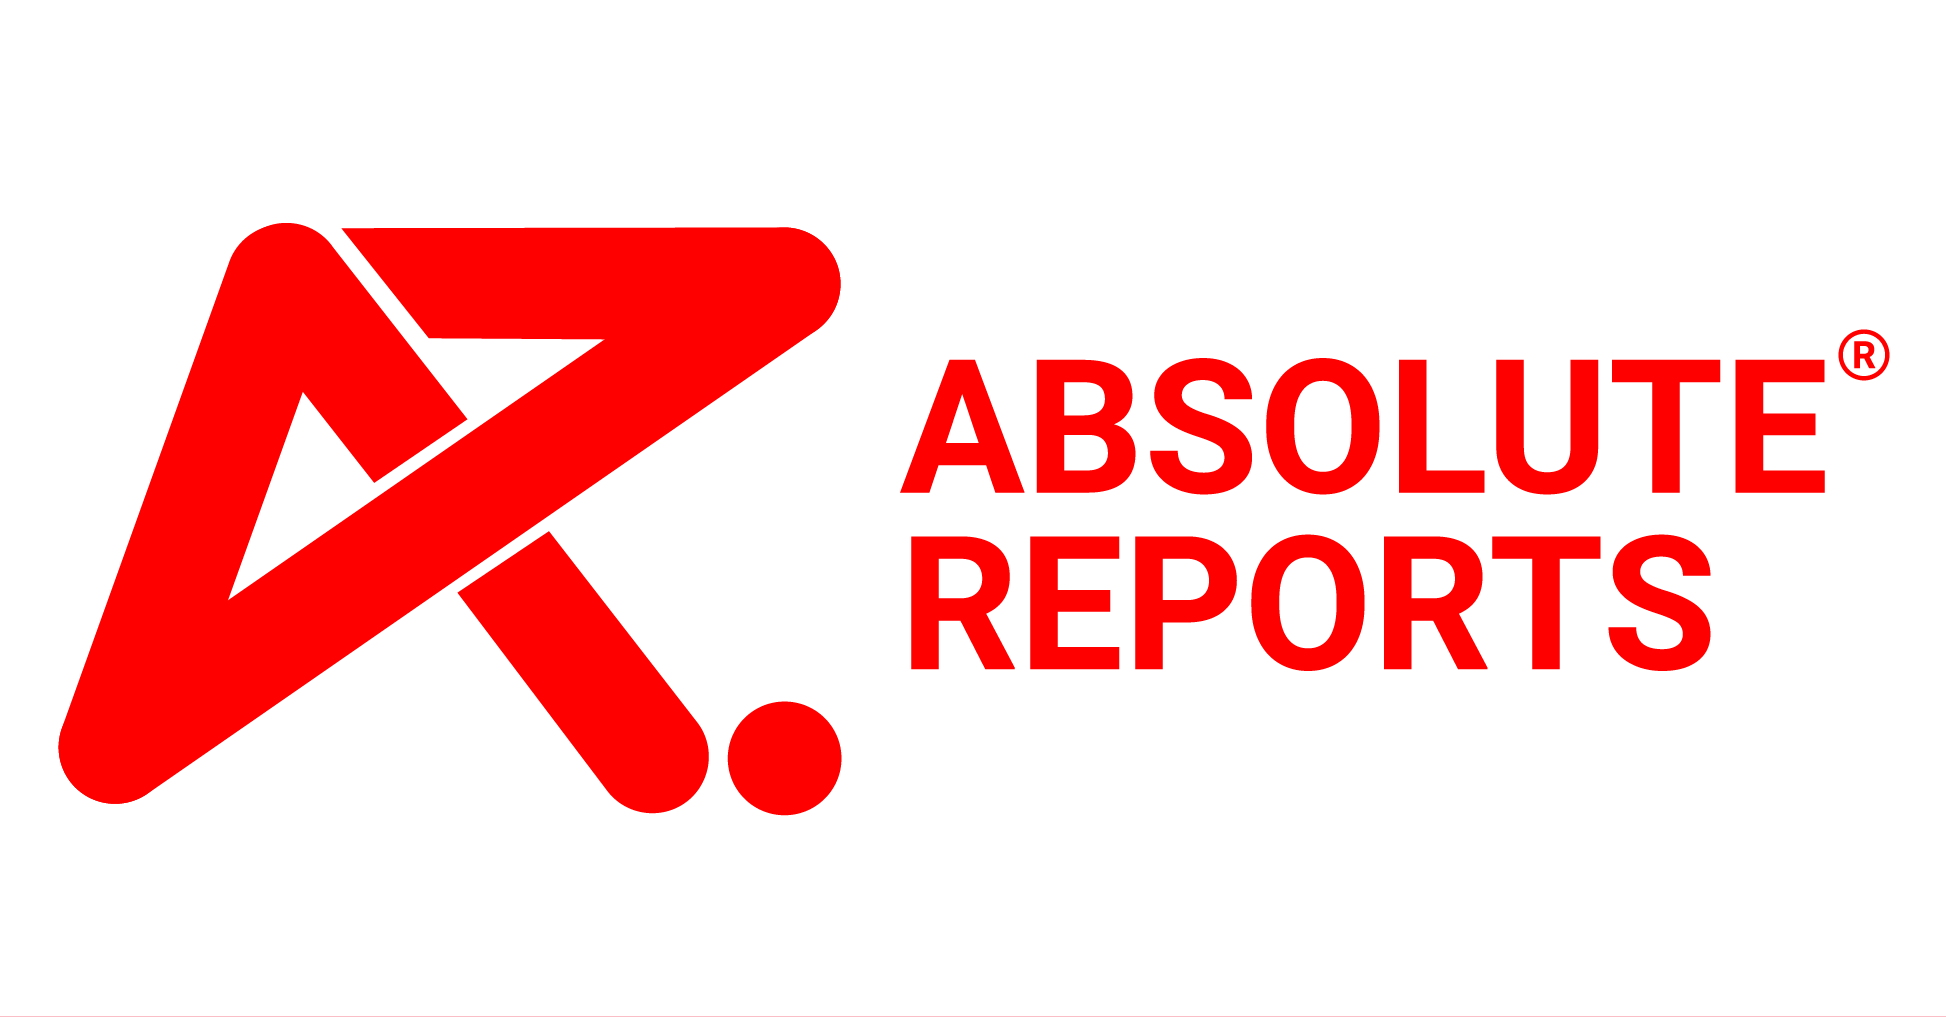 AG Glass Market Key Players, Industry Overview, Supply and Consumption Demand Analysis to 2025